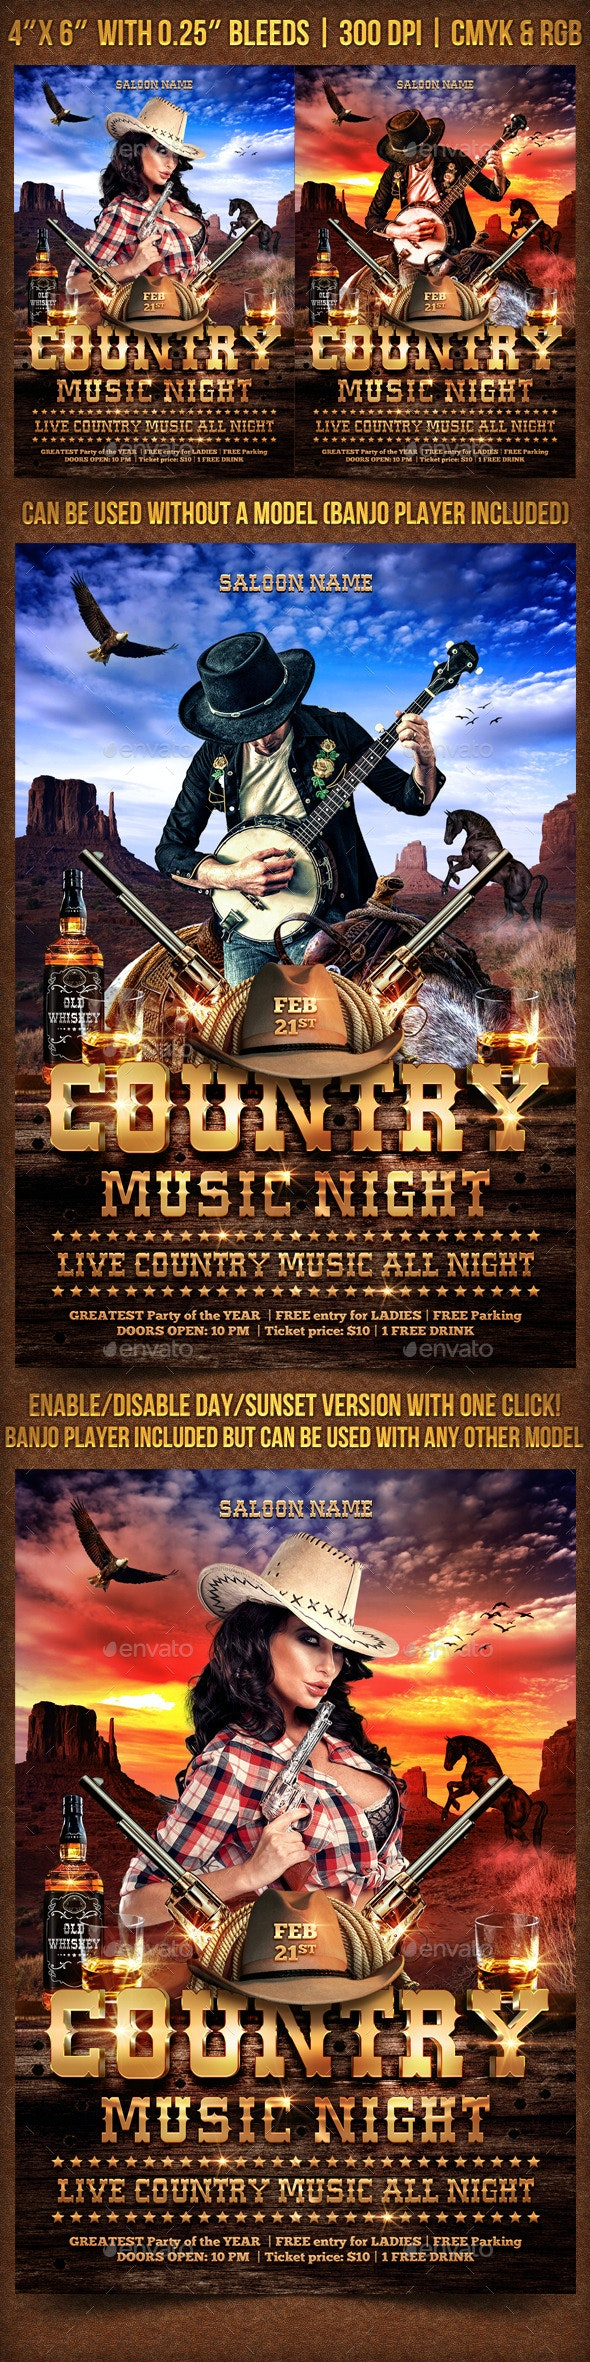 Country Music Night Fyer Template - Clubs & Parties Events